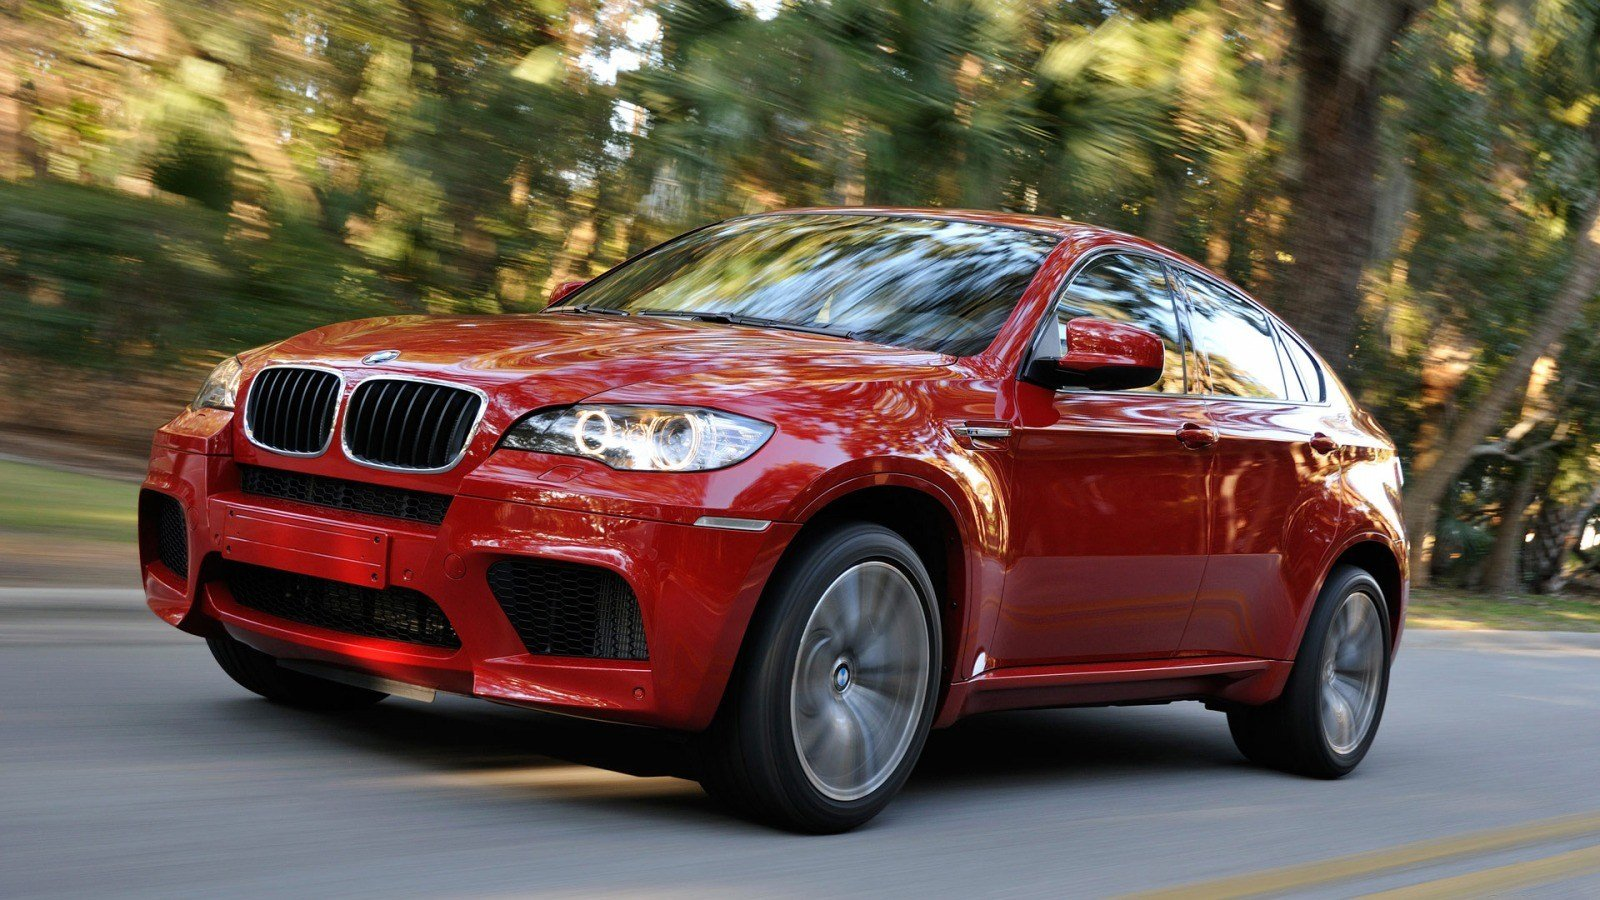 Latest Bmw X6 M Wallpaper Bmw Cars Wallpapers In Jpg Format For Free Download